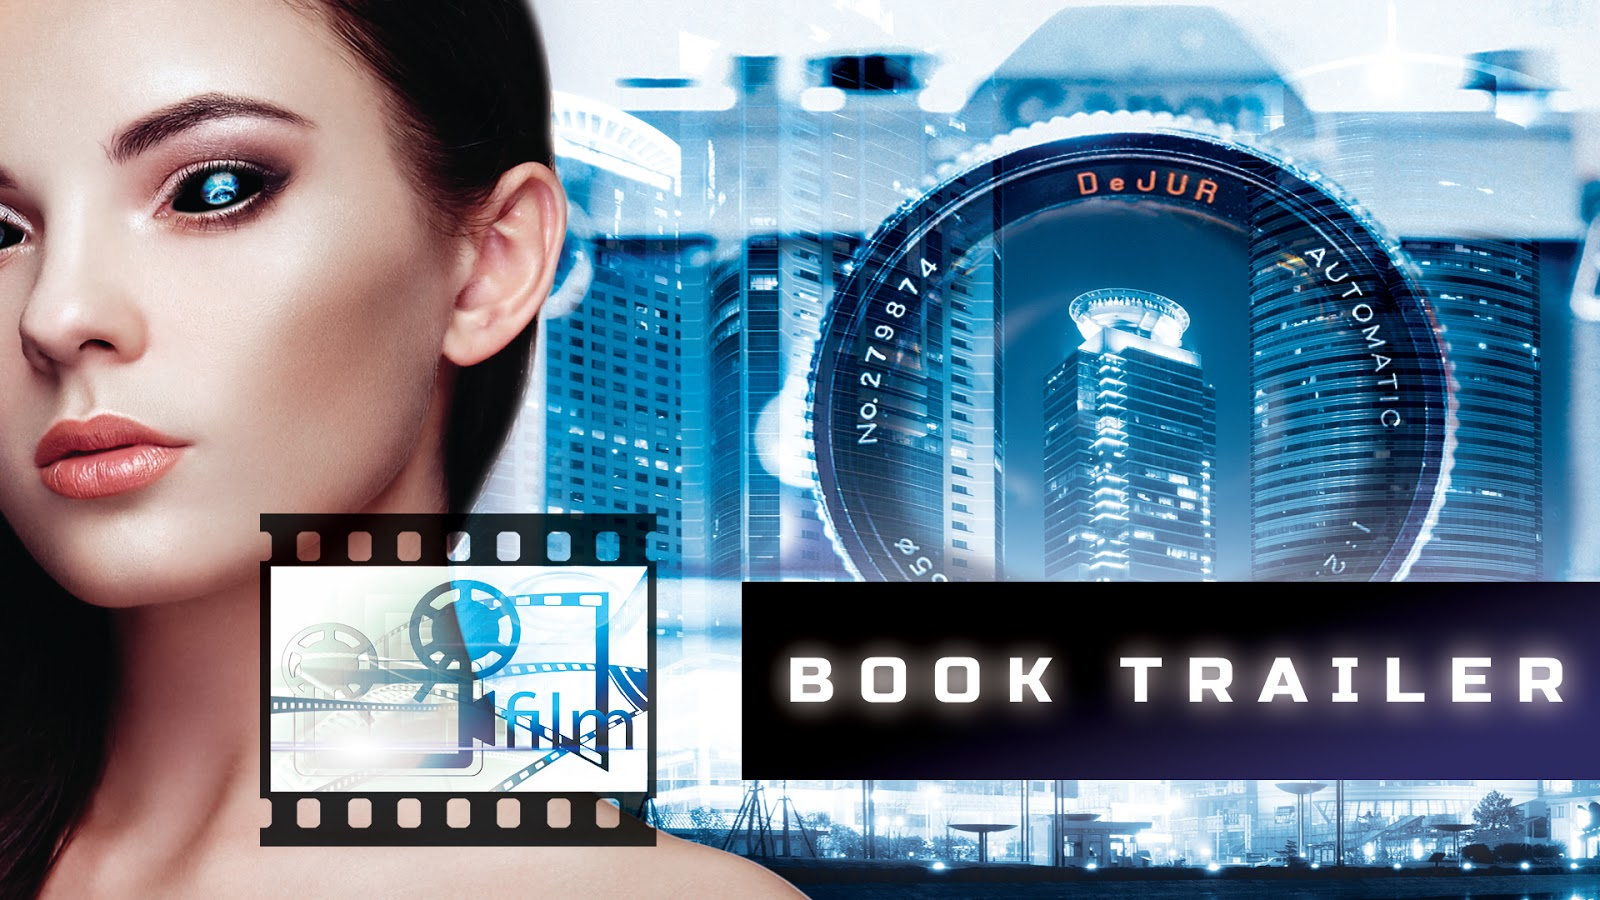 Visualartzi Book Trailer, How To Book Trailer, Girl Cool Eye Effects  Photoshop, How